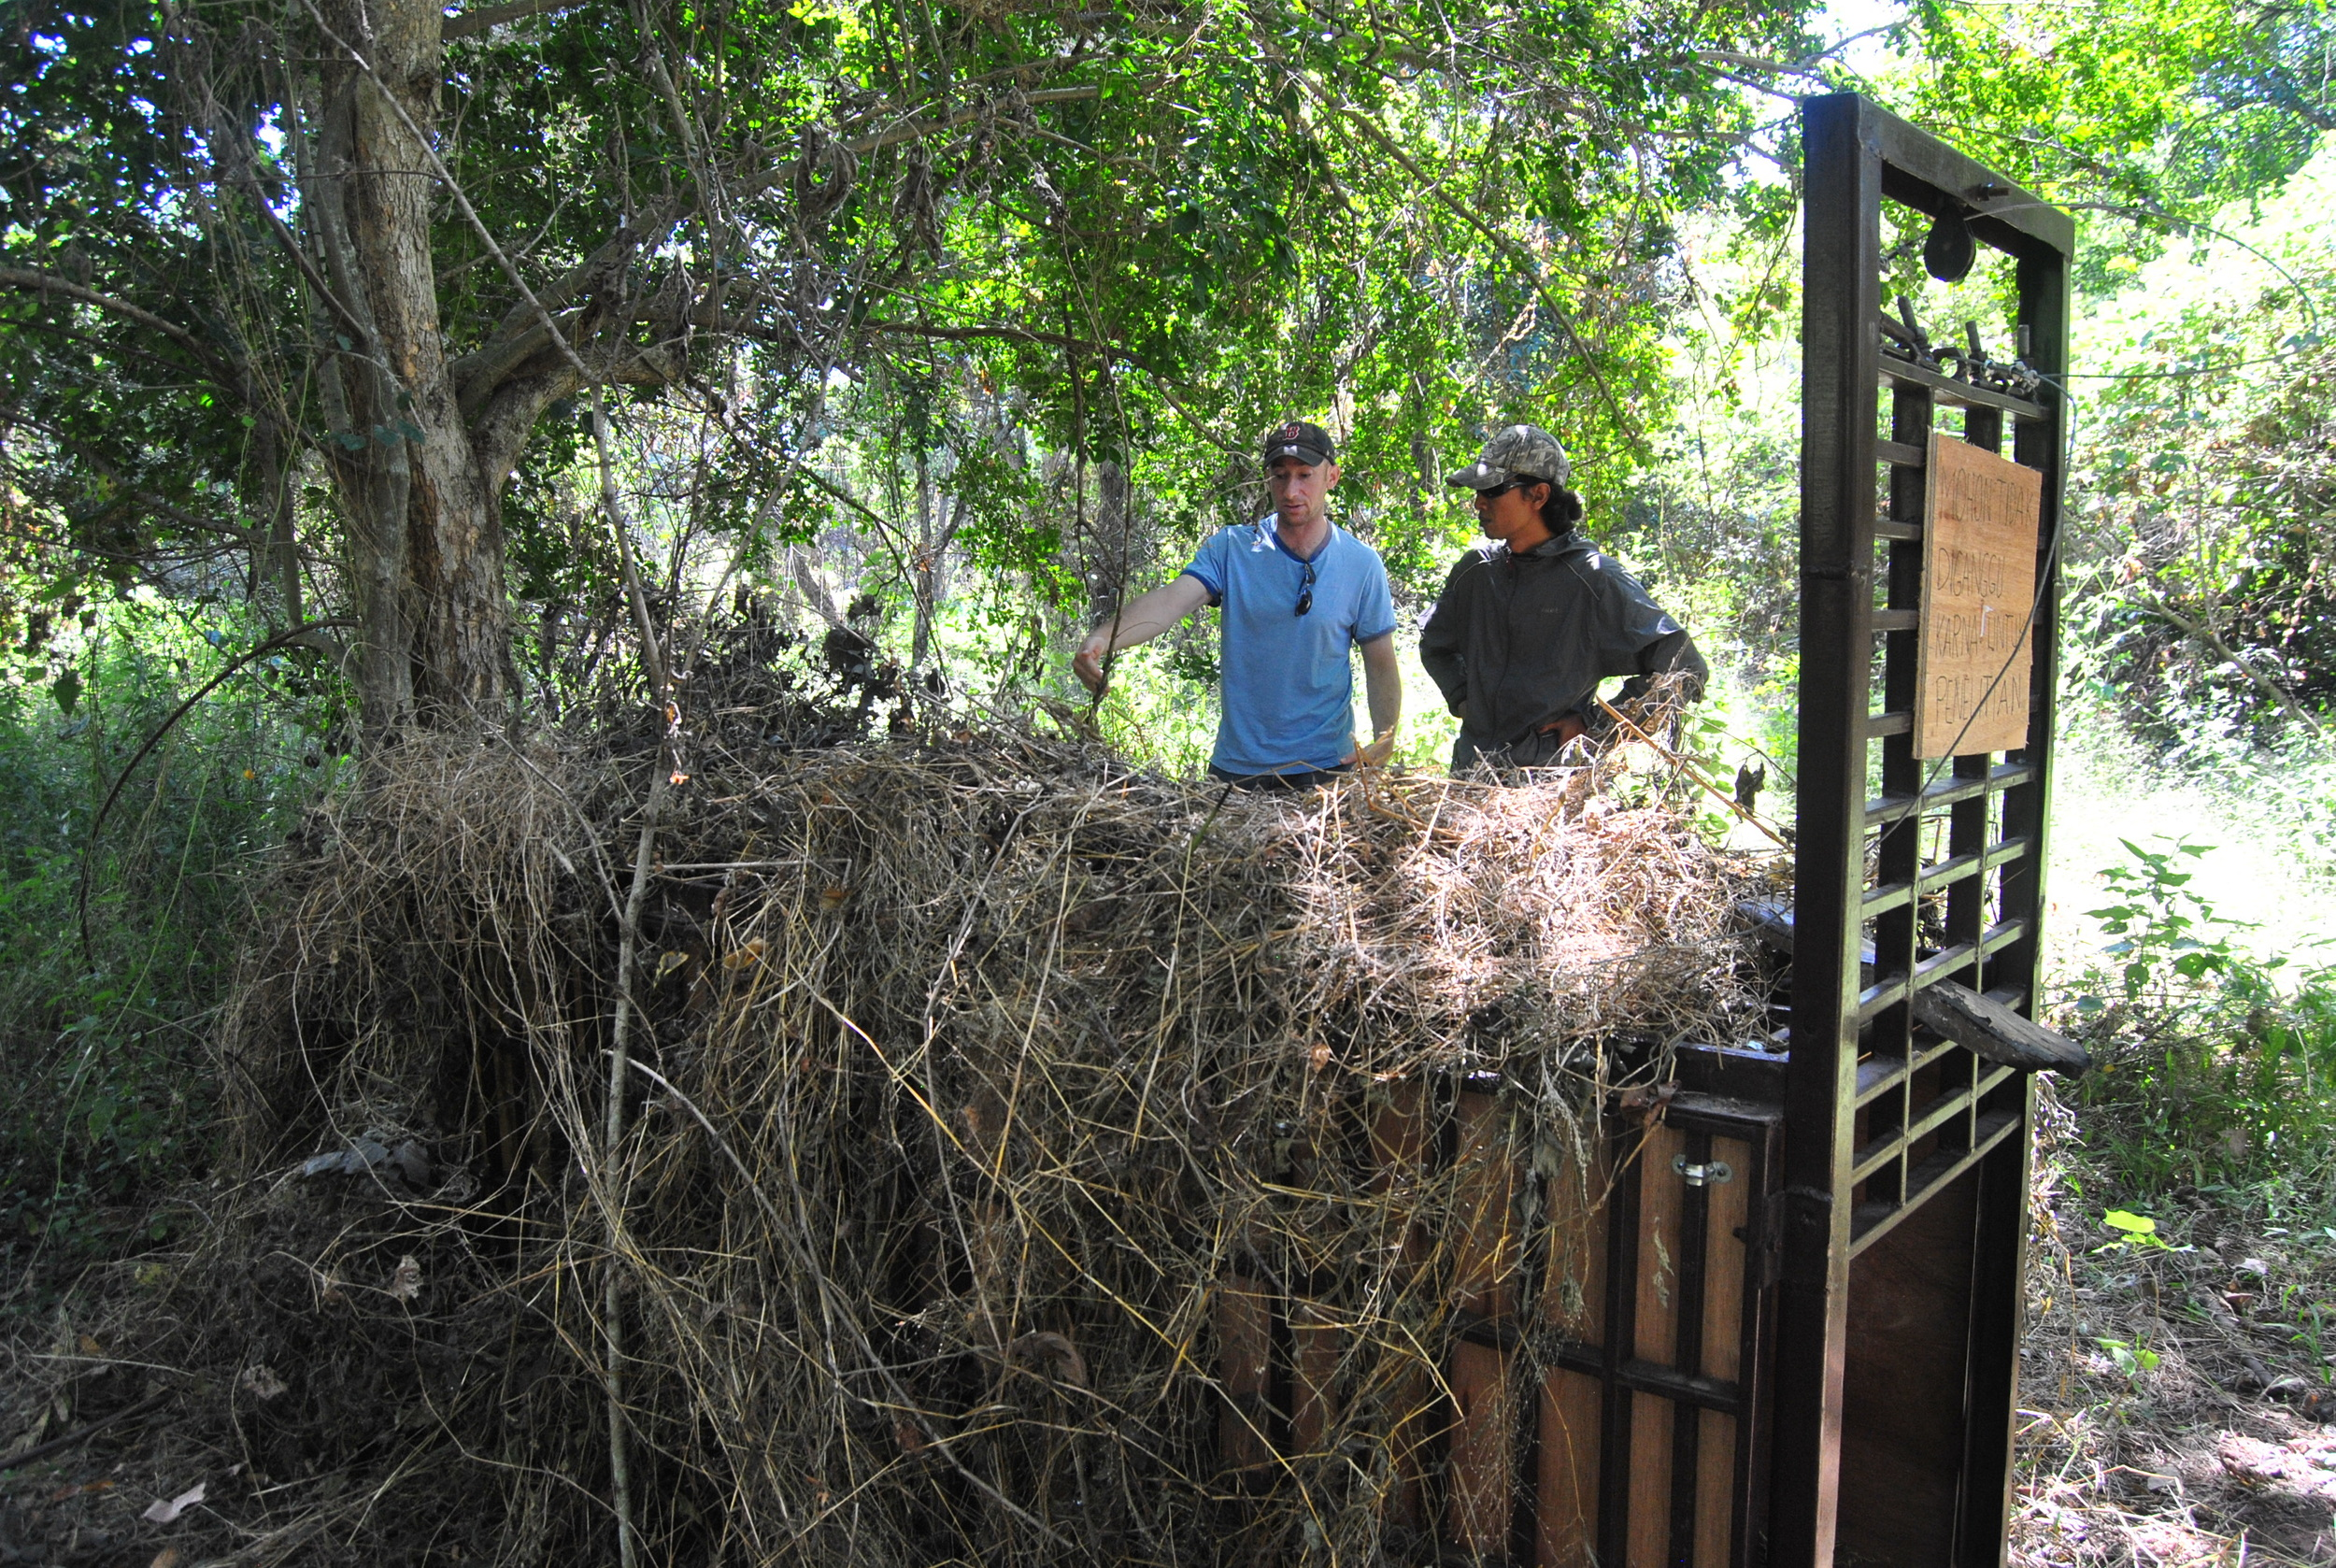 Andrew and Wahyudi discuss the leopard trap